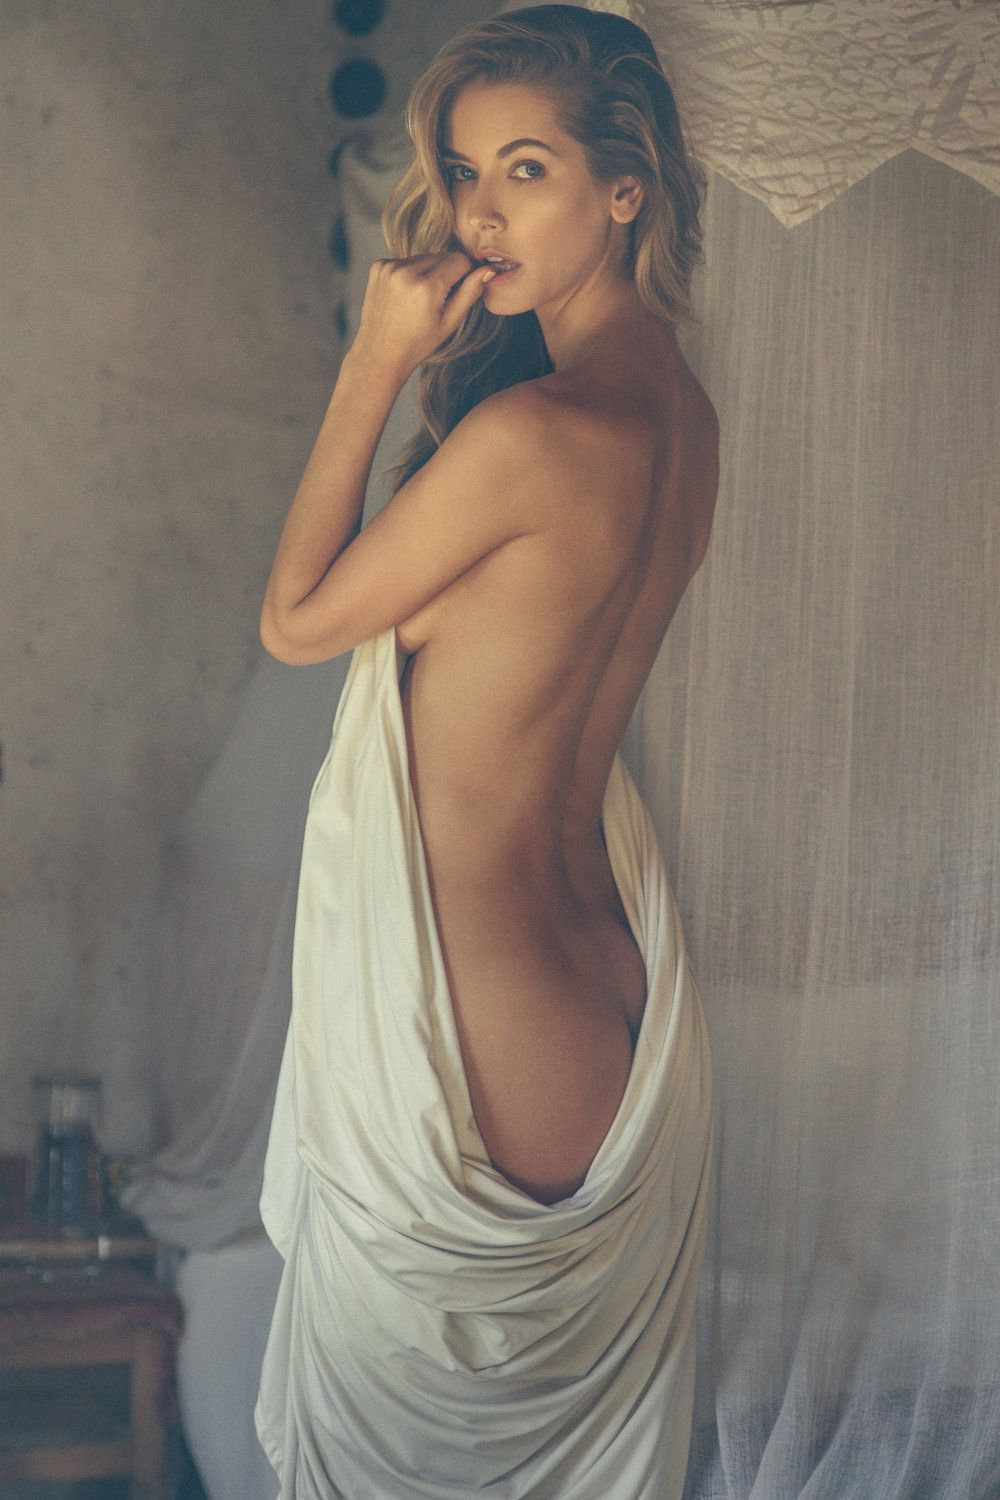 Photos Rachel Yampolsky naked (72 foto and video), Topless, Cleavage, Boobs, braless 2020